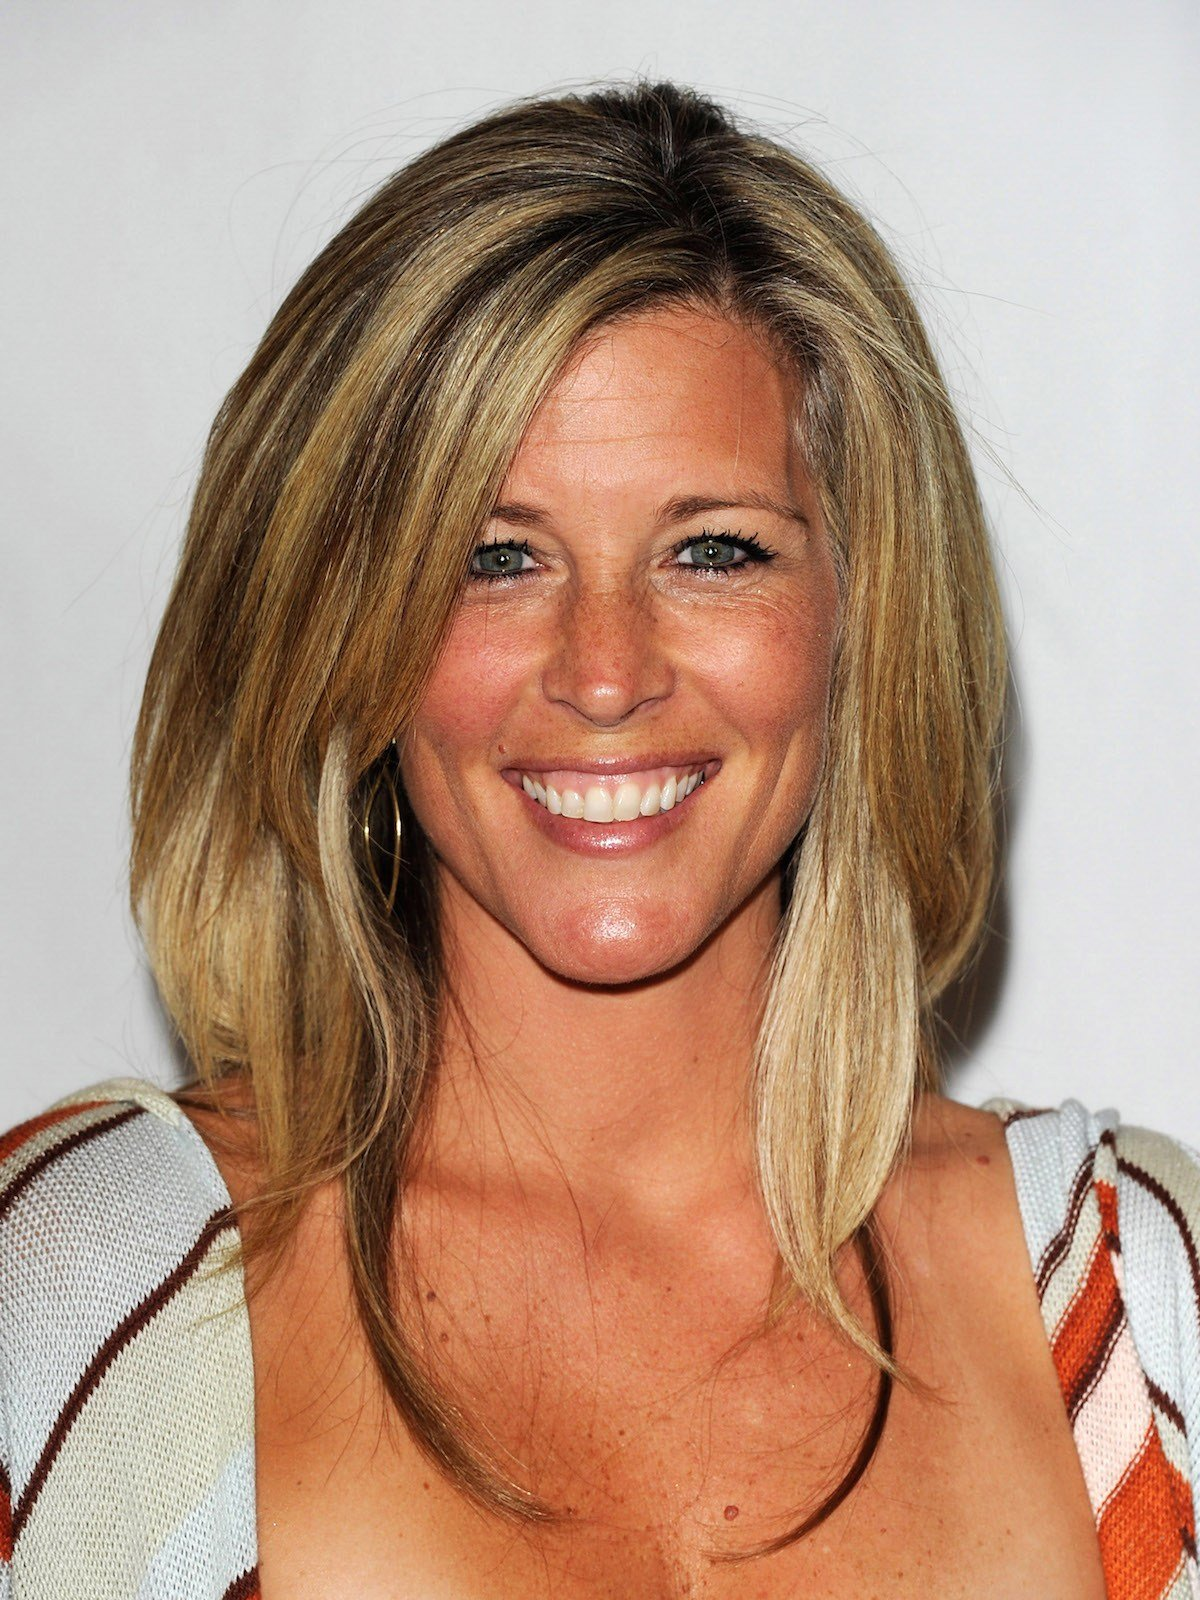 The Best Laura Wright Haircut Haircuts Models Ideas Pictures